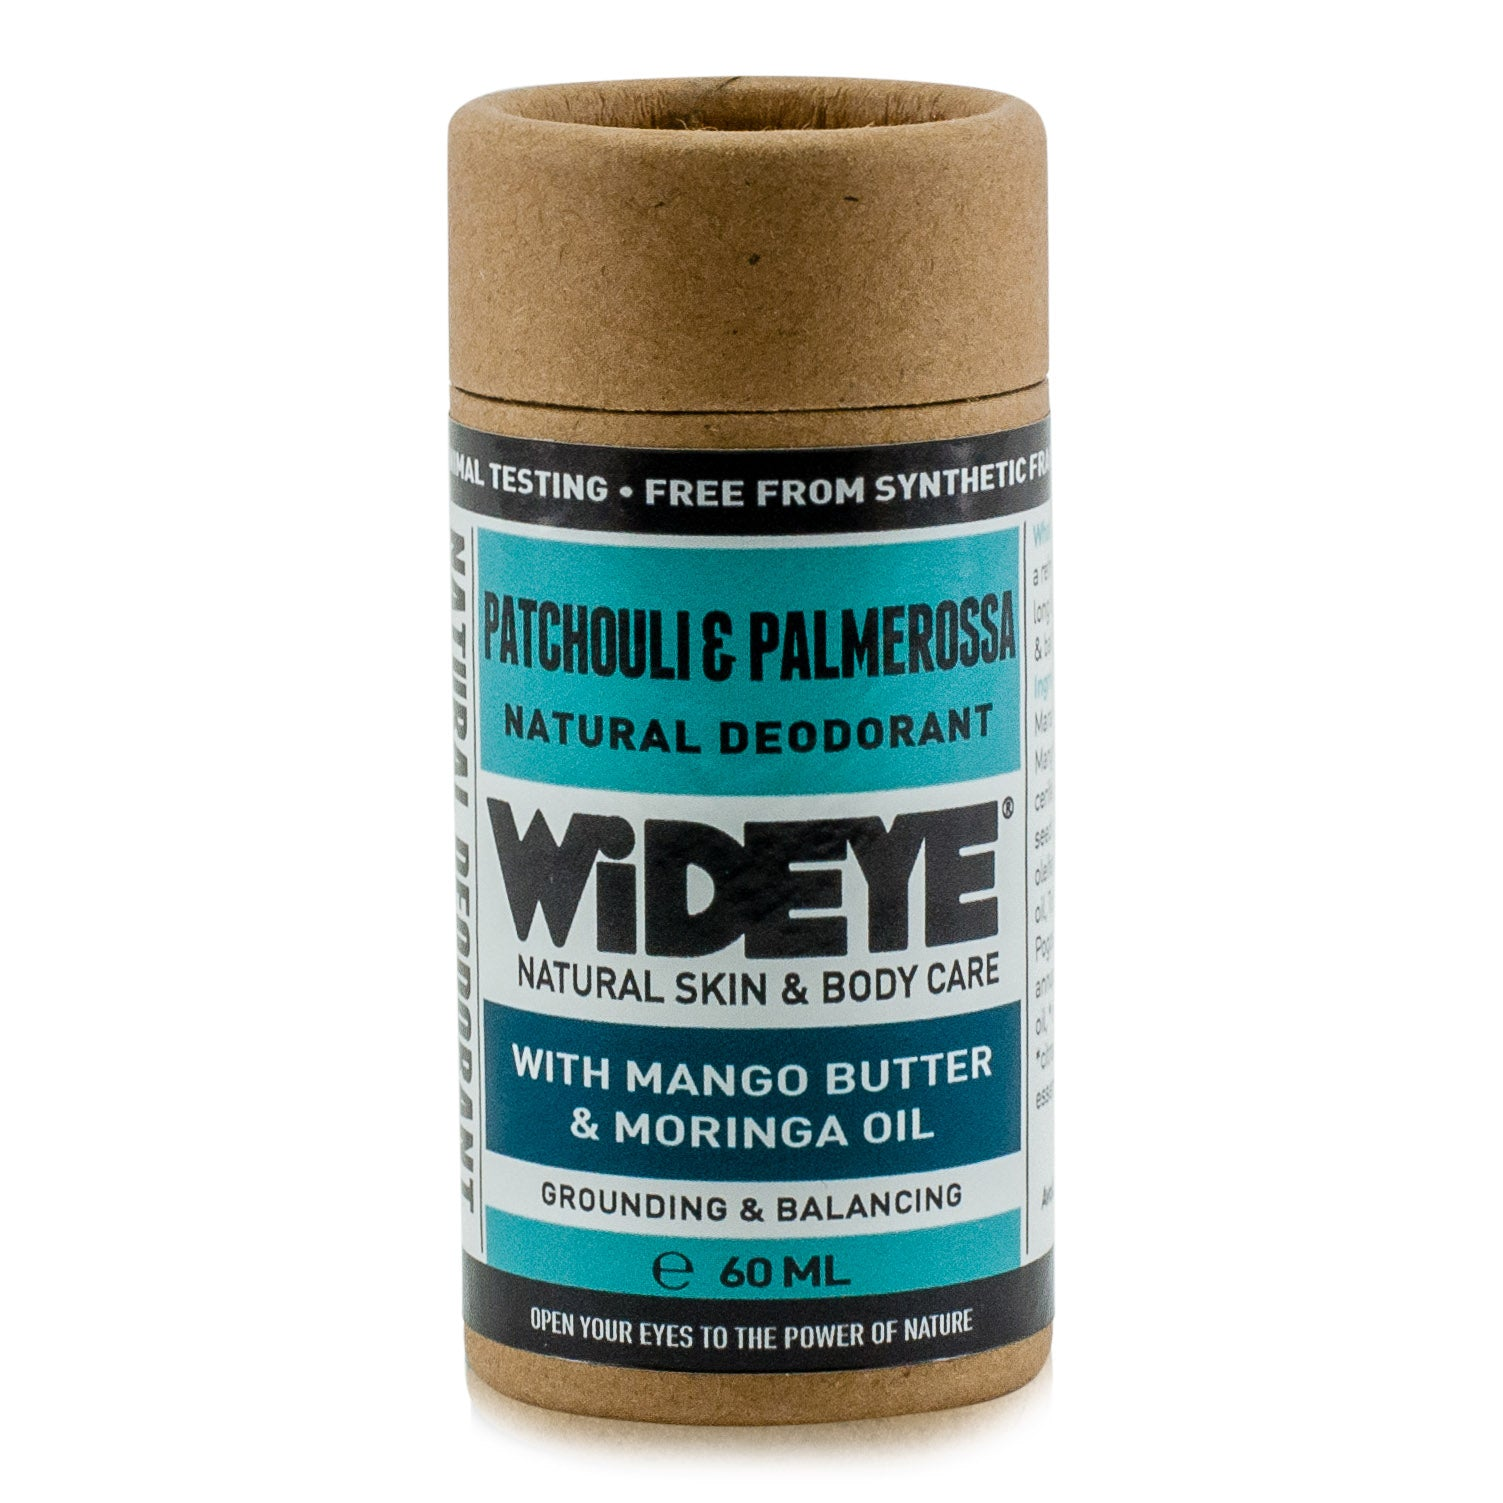 Natural vegan skincare Patchouli and Palmarosa deodorant in recyclable cardboard container handmade by WiDEYE in Rye.